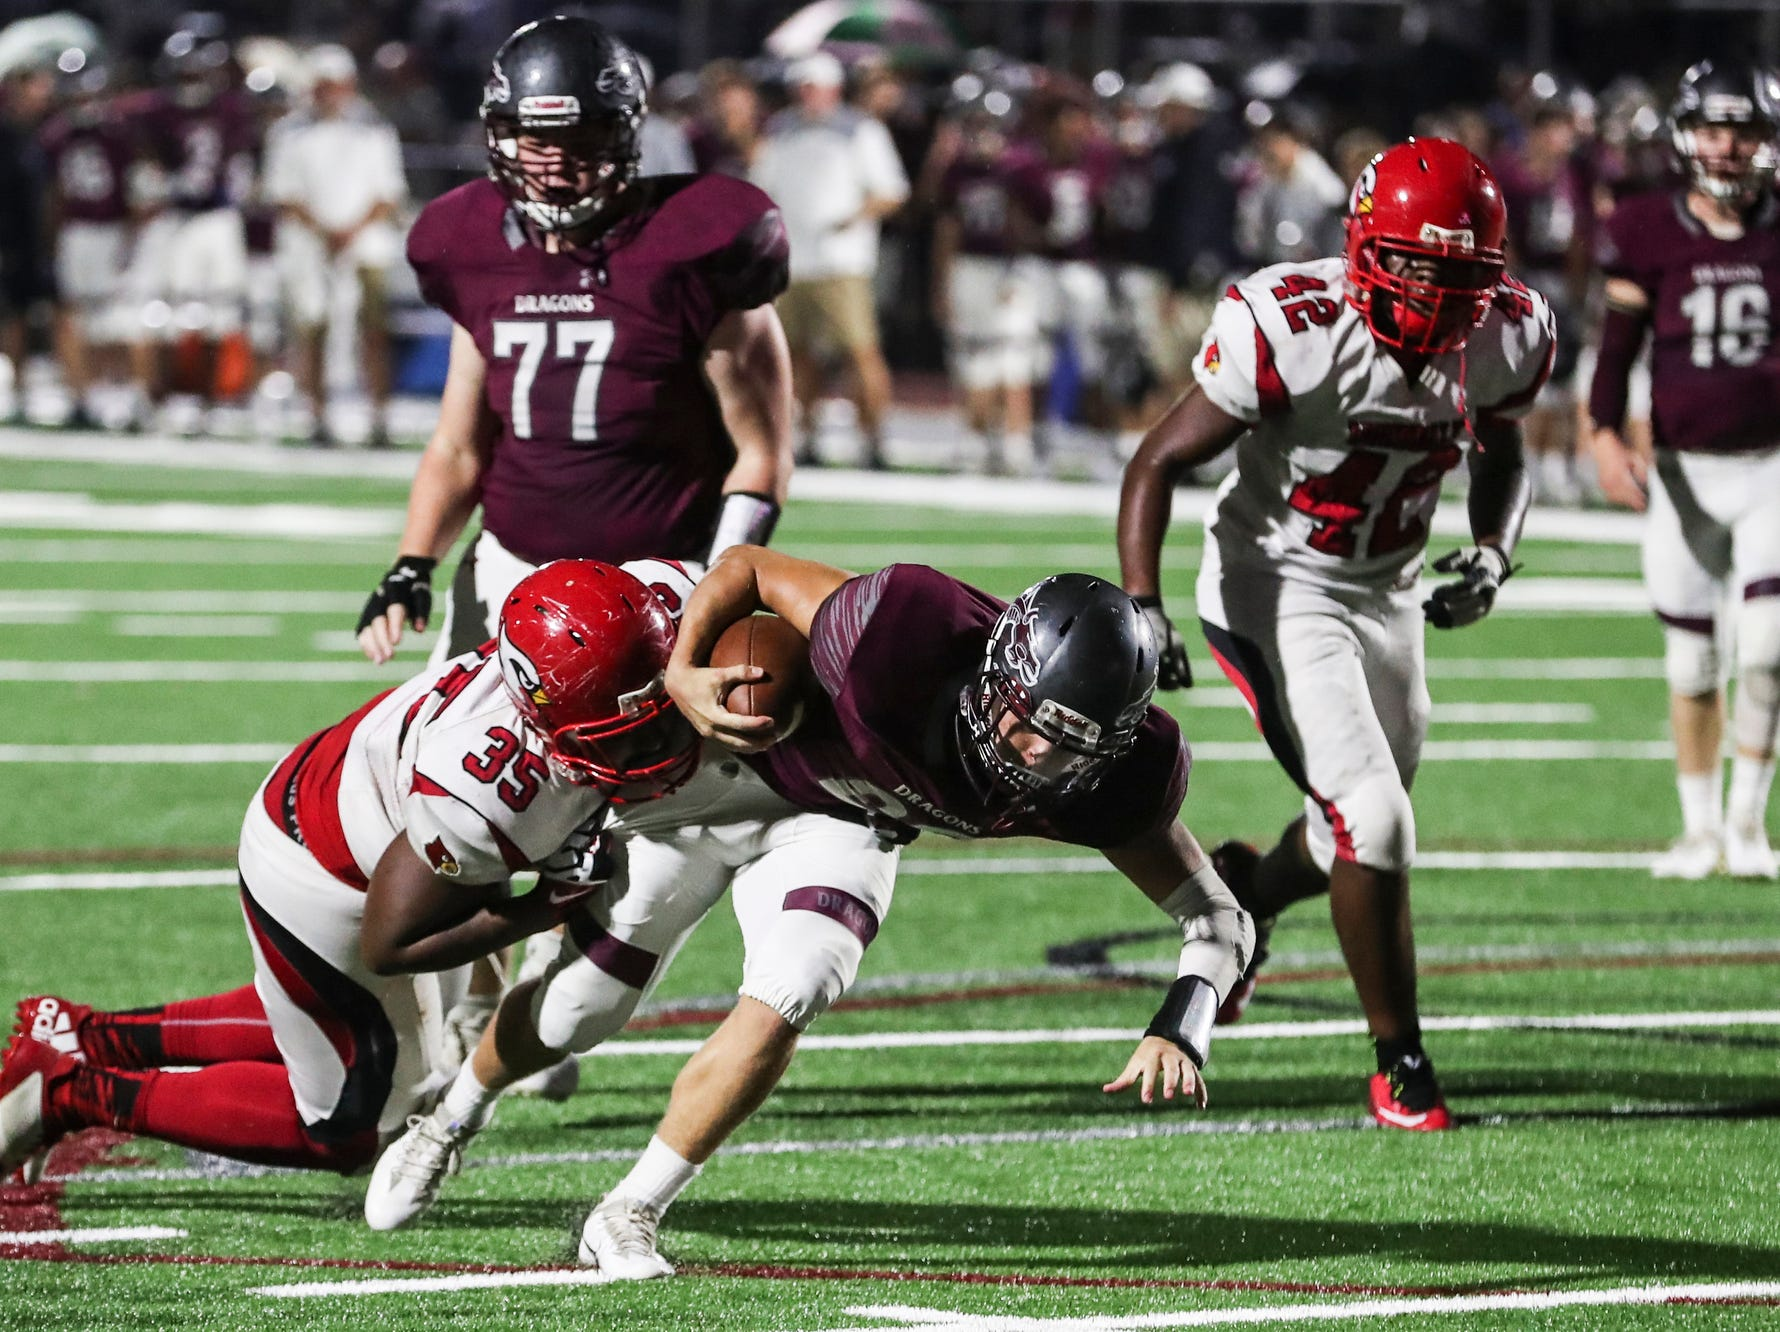 September 21 2018 - Collierville's Peyton Murphy is brought down by Wooddale defense during Friday night's game versus Wooddale at Collierville High School.